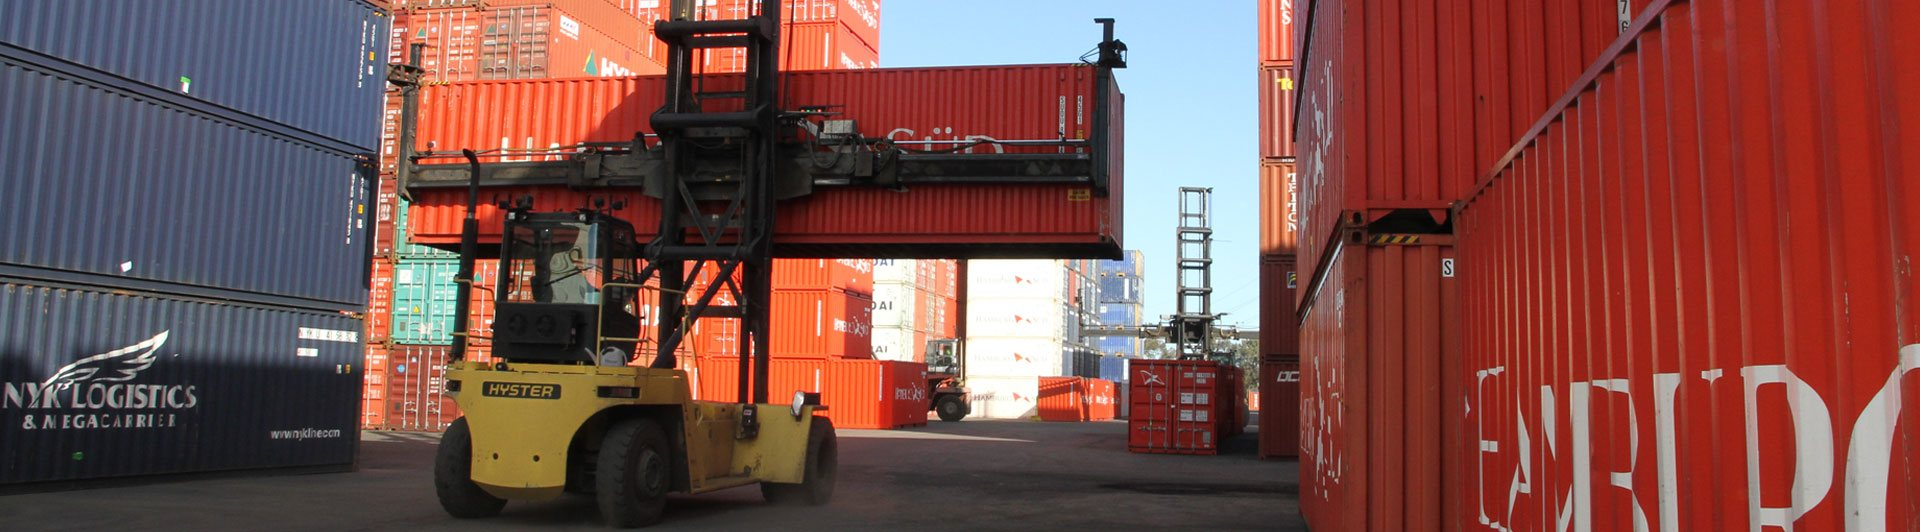 PortMc Shipping Containers Sydney